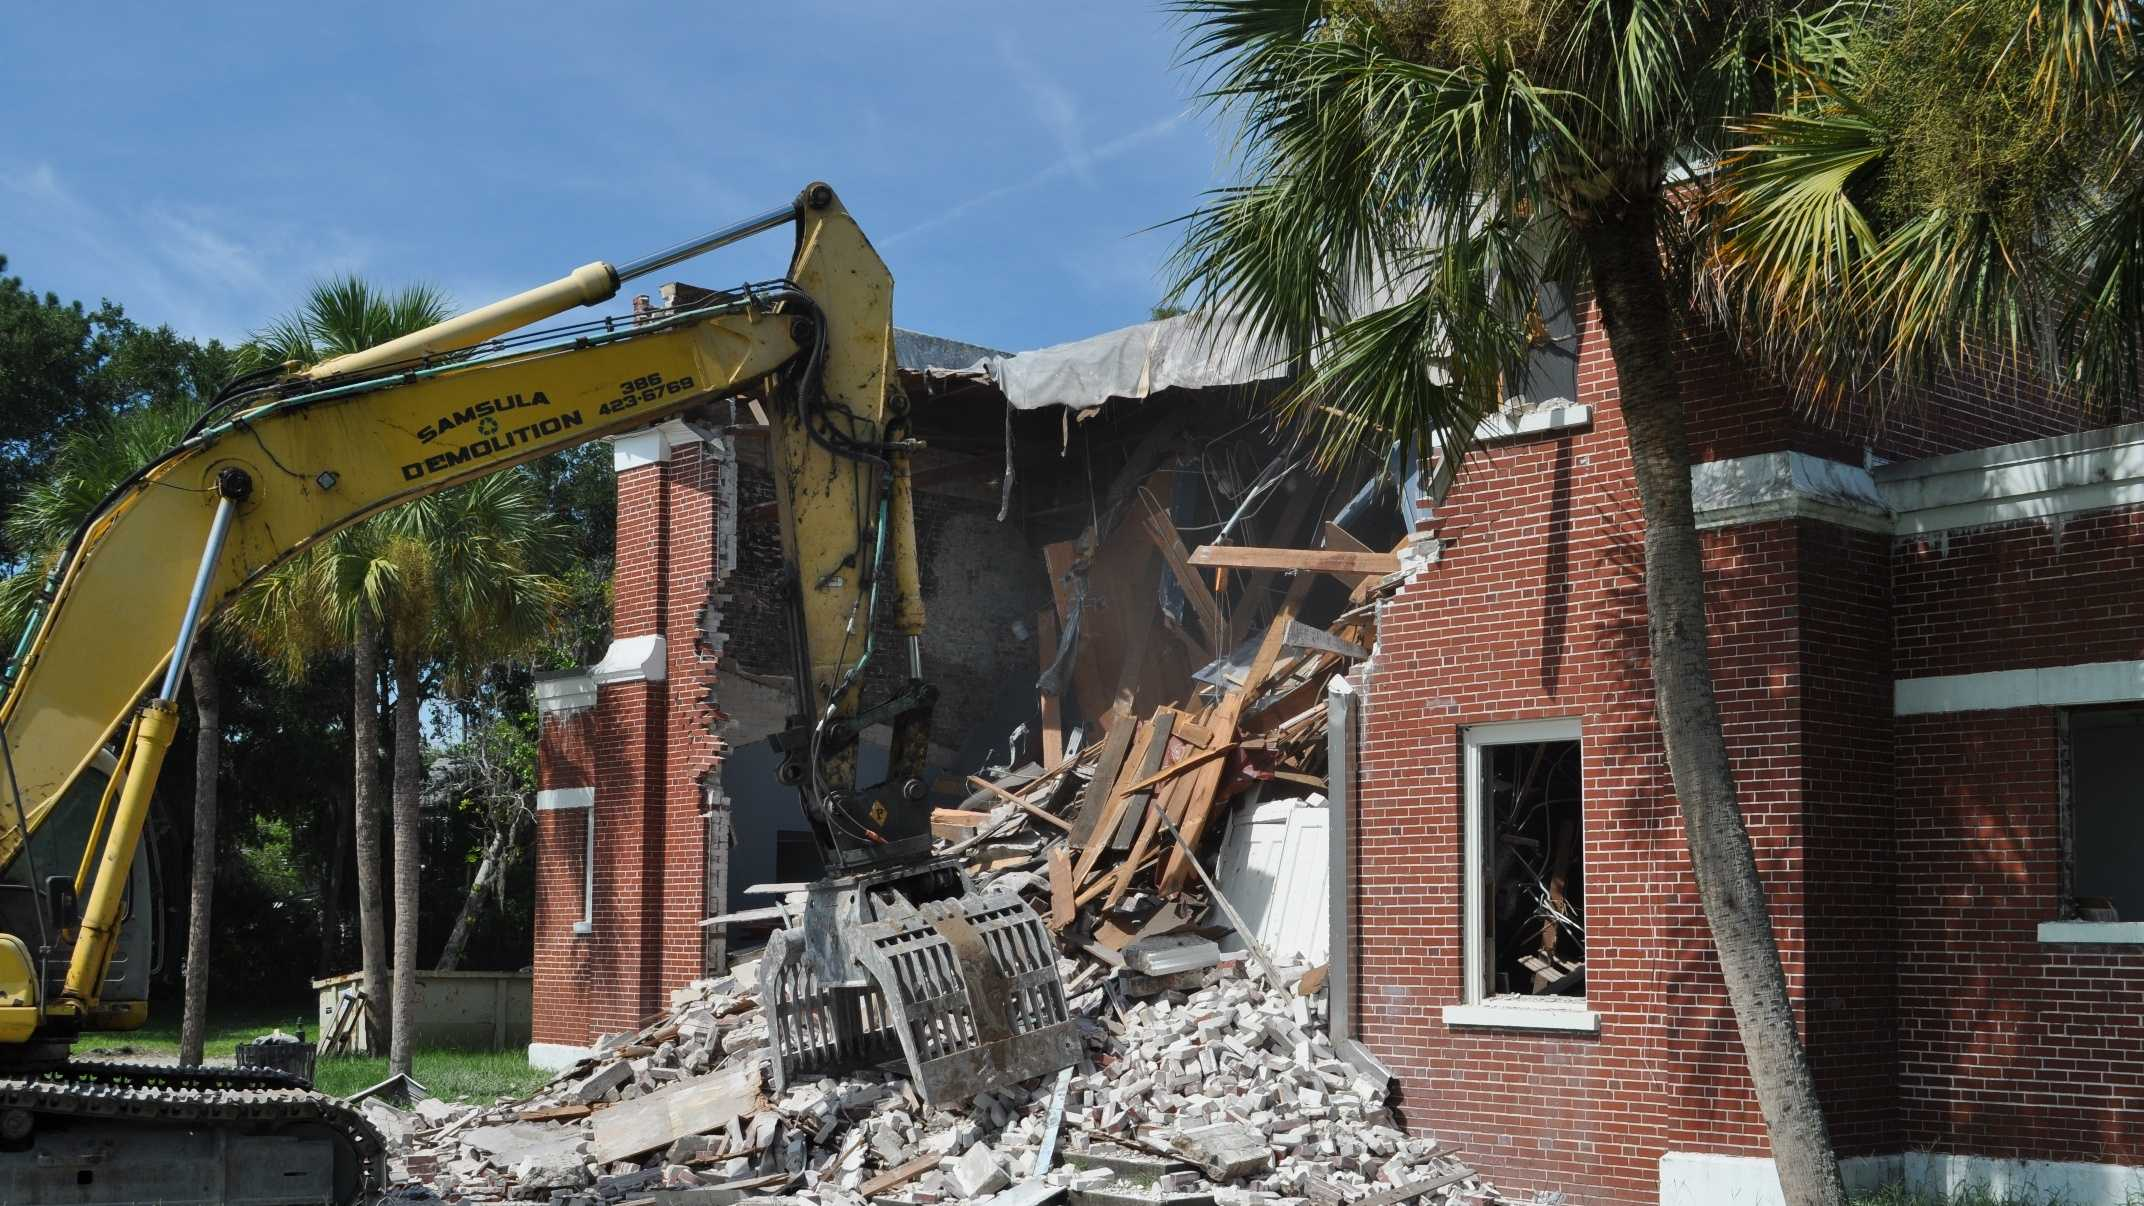 Demolition has twice been delayed but got under way Wednesday morning.  Officials said they are planning on a green space and parking lot at the theater site.